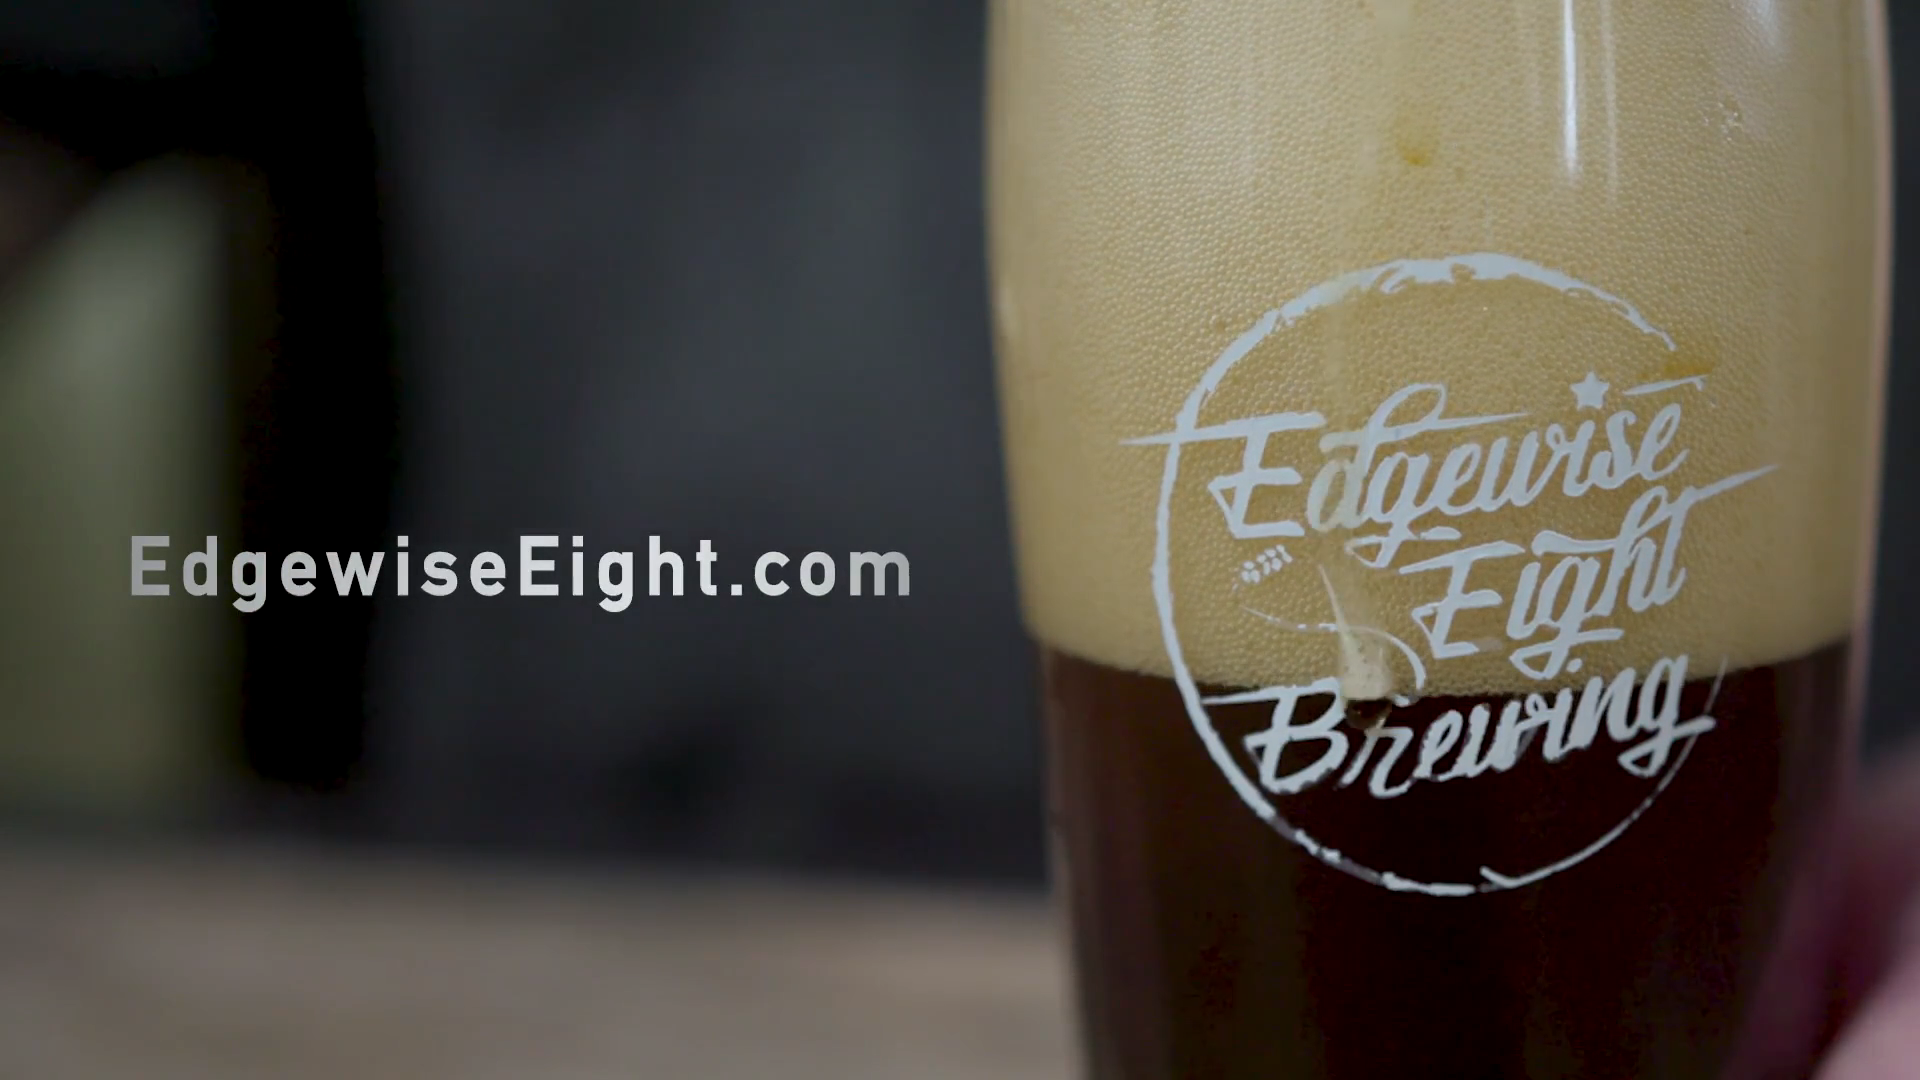 Edgewise Eight Brewing Commercial Freeze Frame